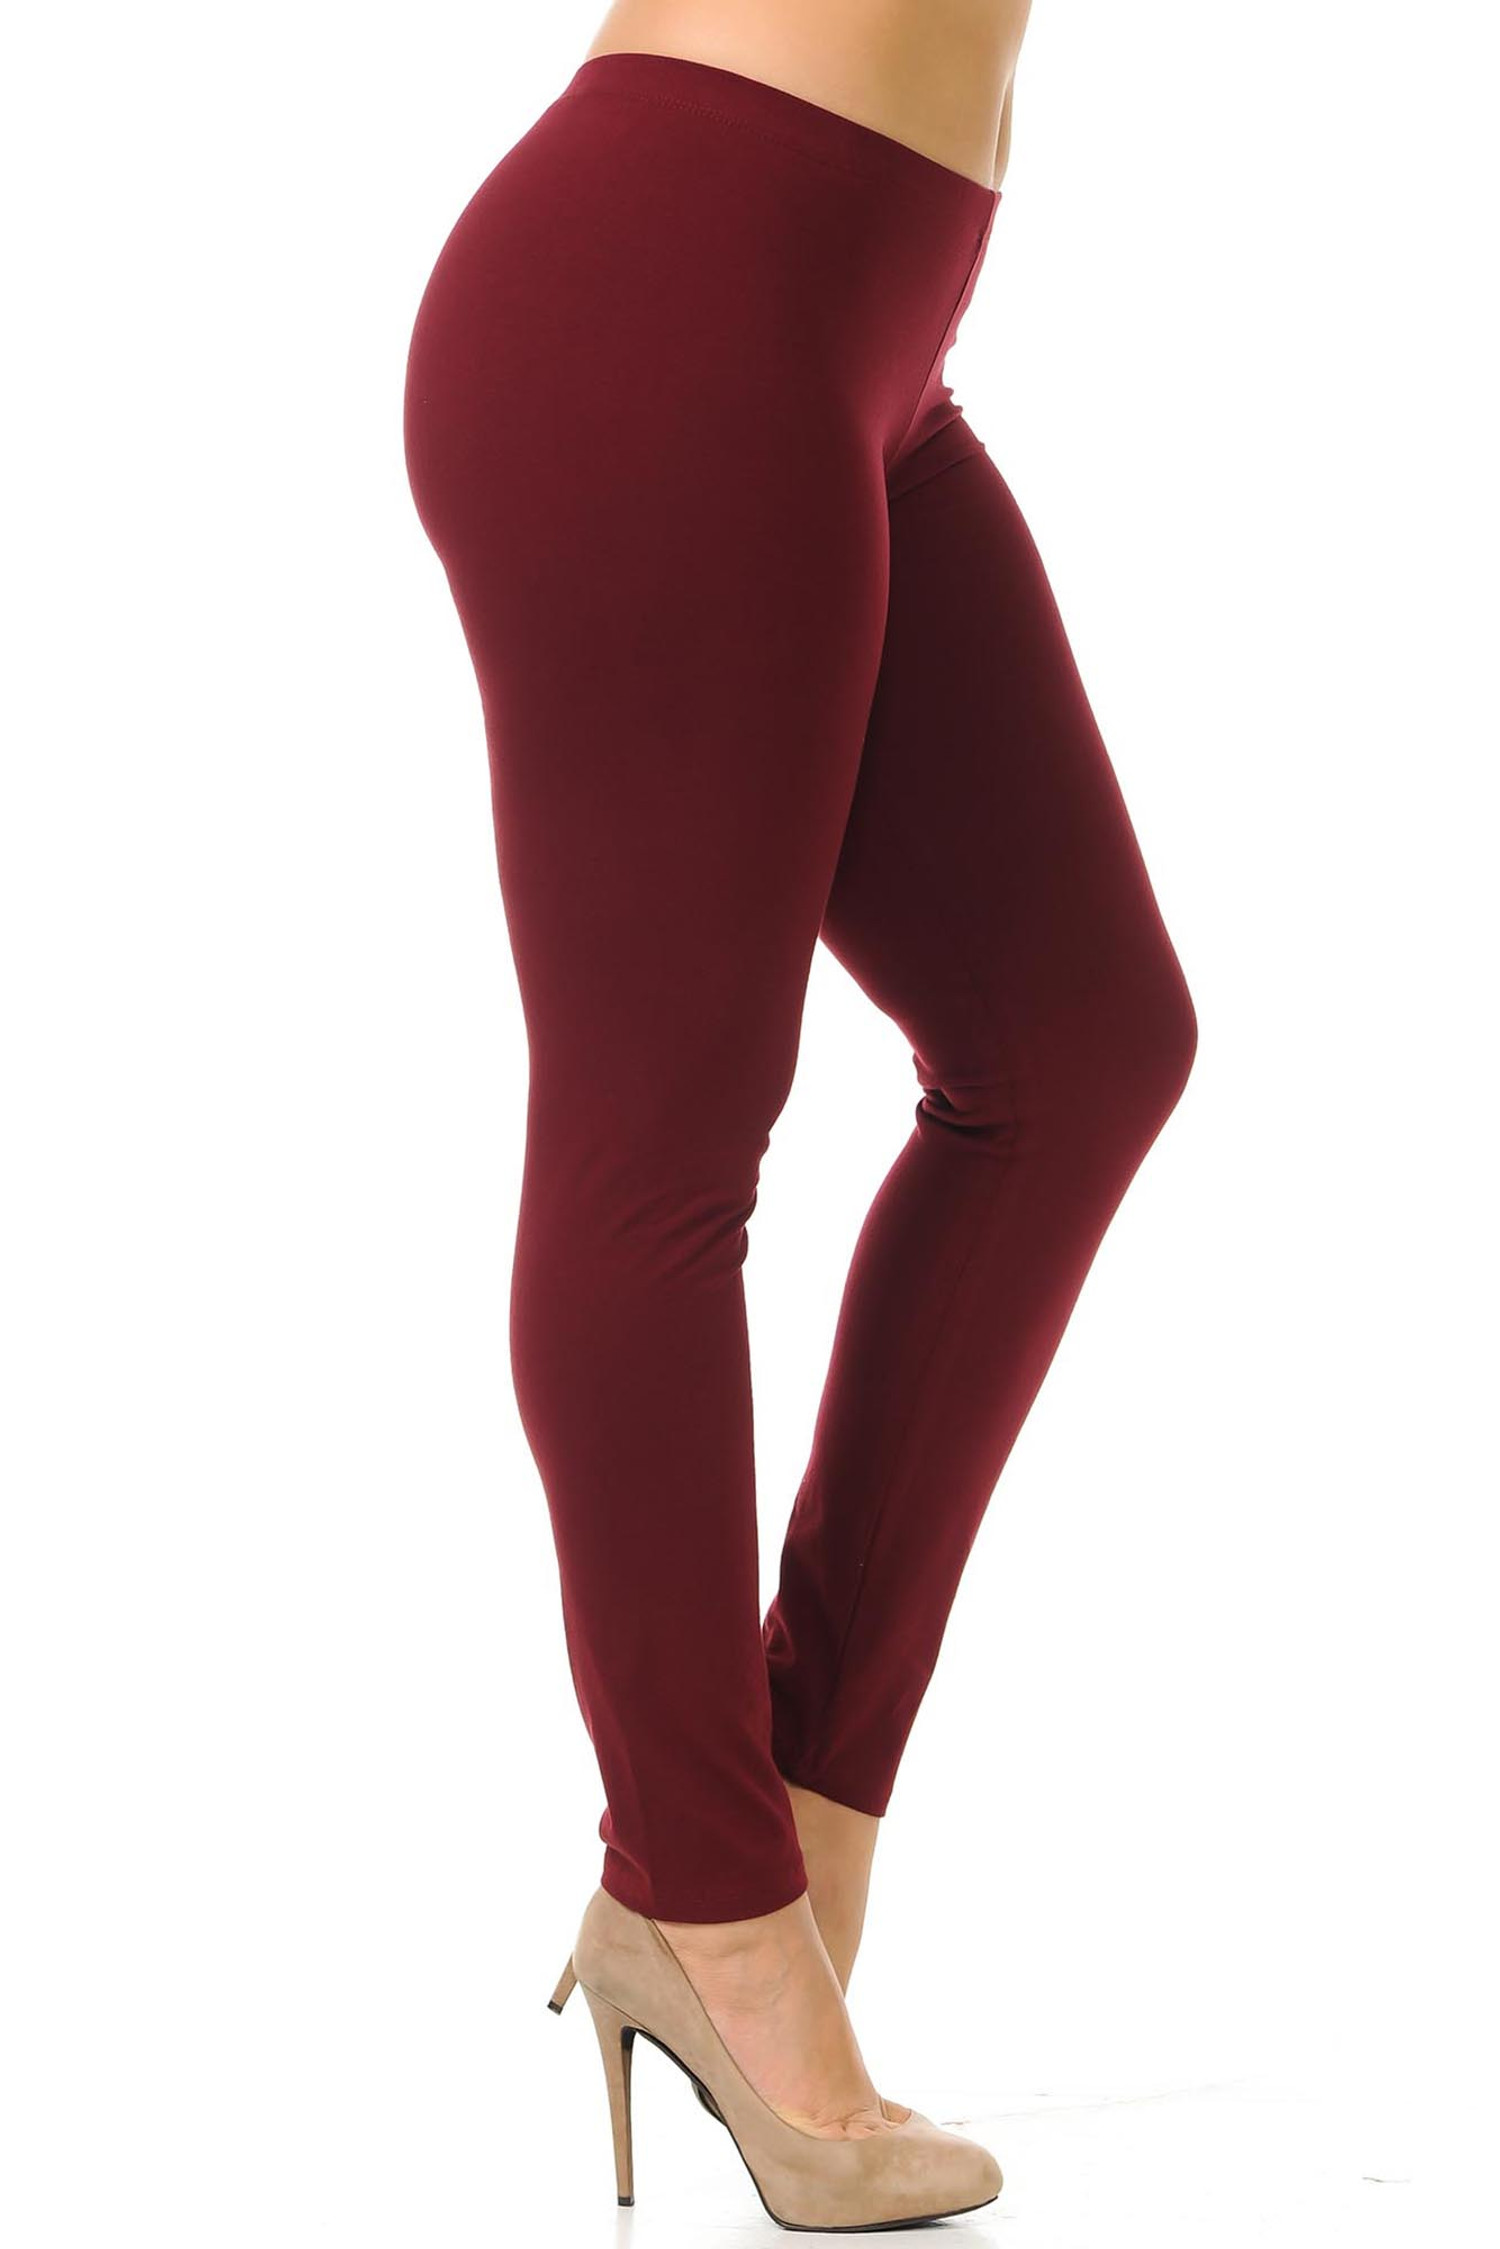 Right side view of burgundy plus size USA Cotton Full Length Leggings.